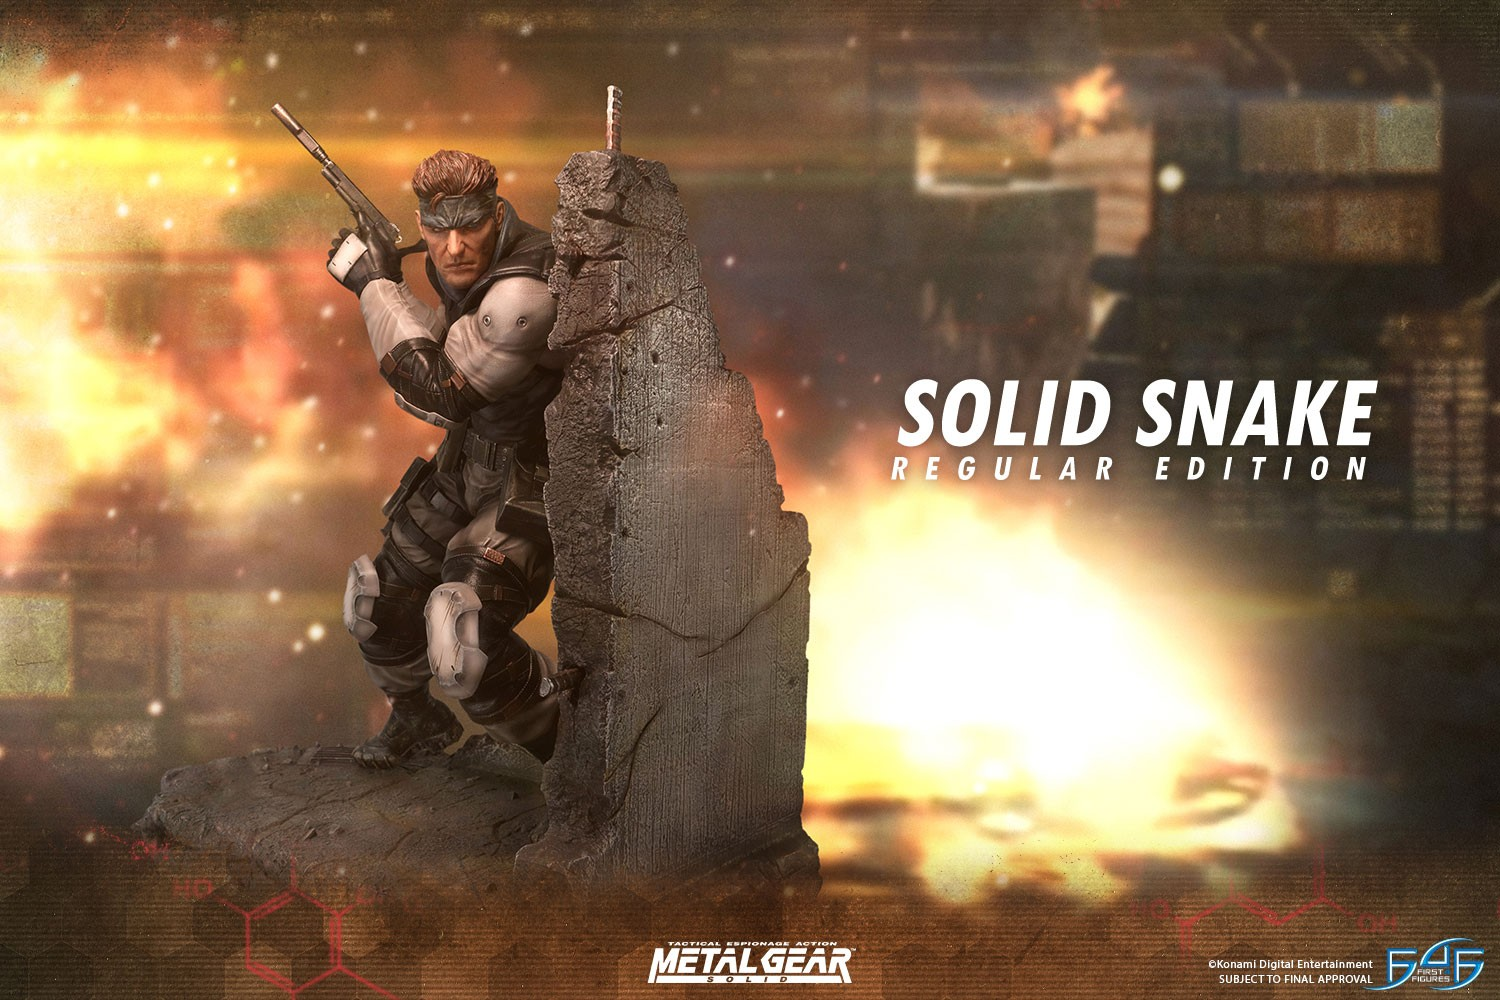 FIRST4FIGURES 1/4 SCALE SOLID SNAKE STATUE